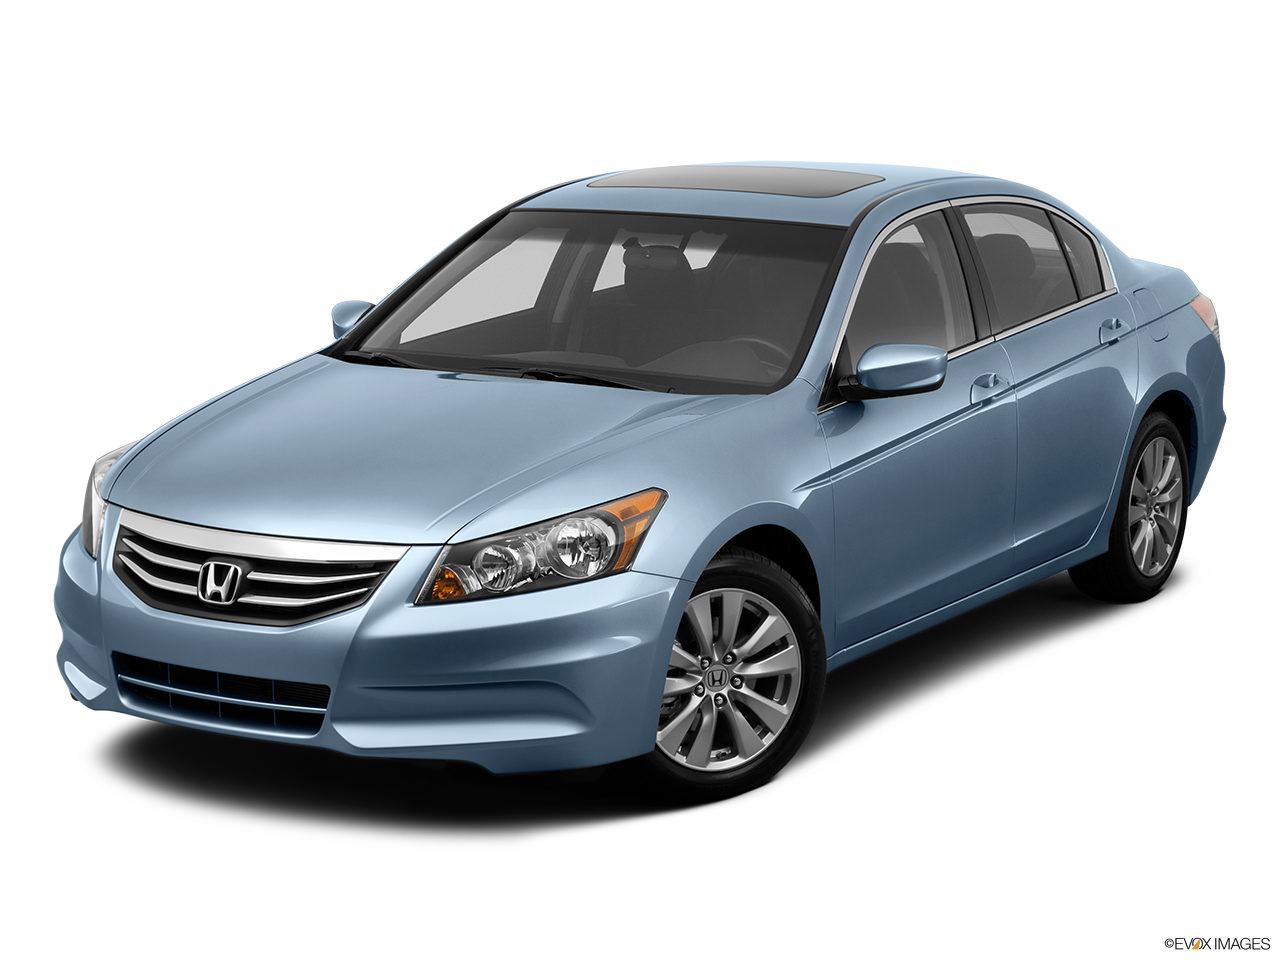 2012 honda accord vs 2012 honda civic which one should i for Honda accord vs honda civic